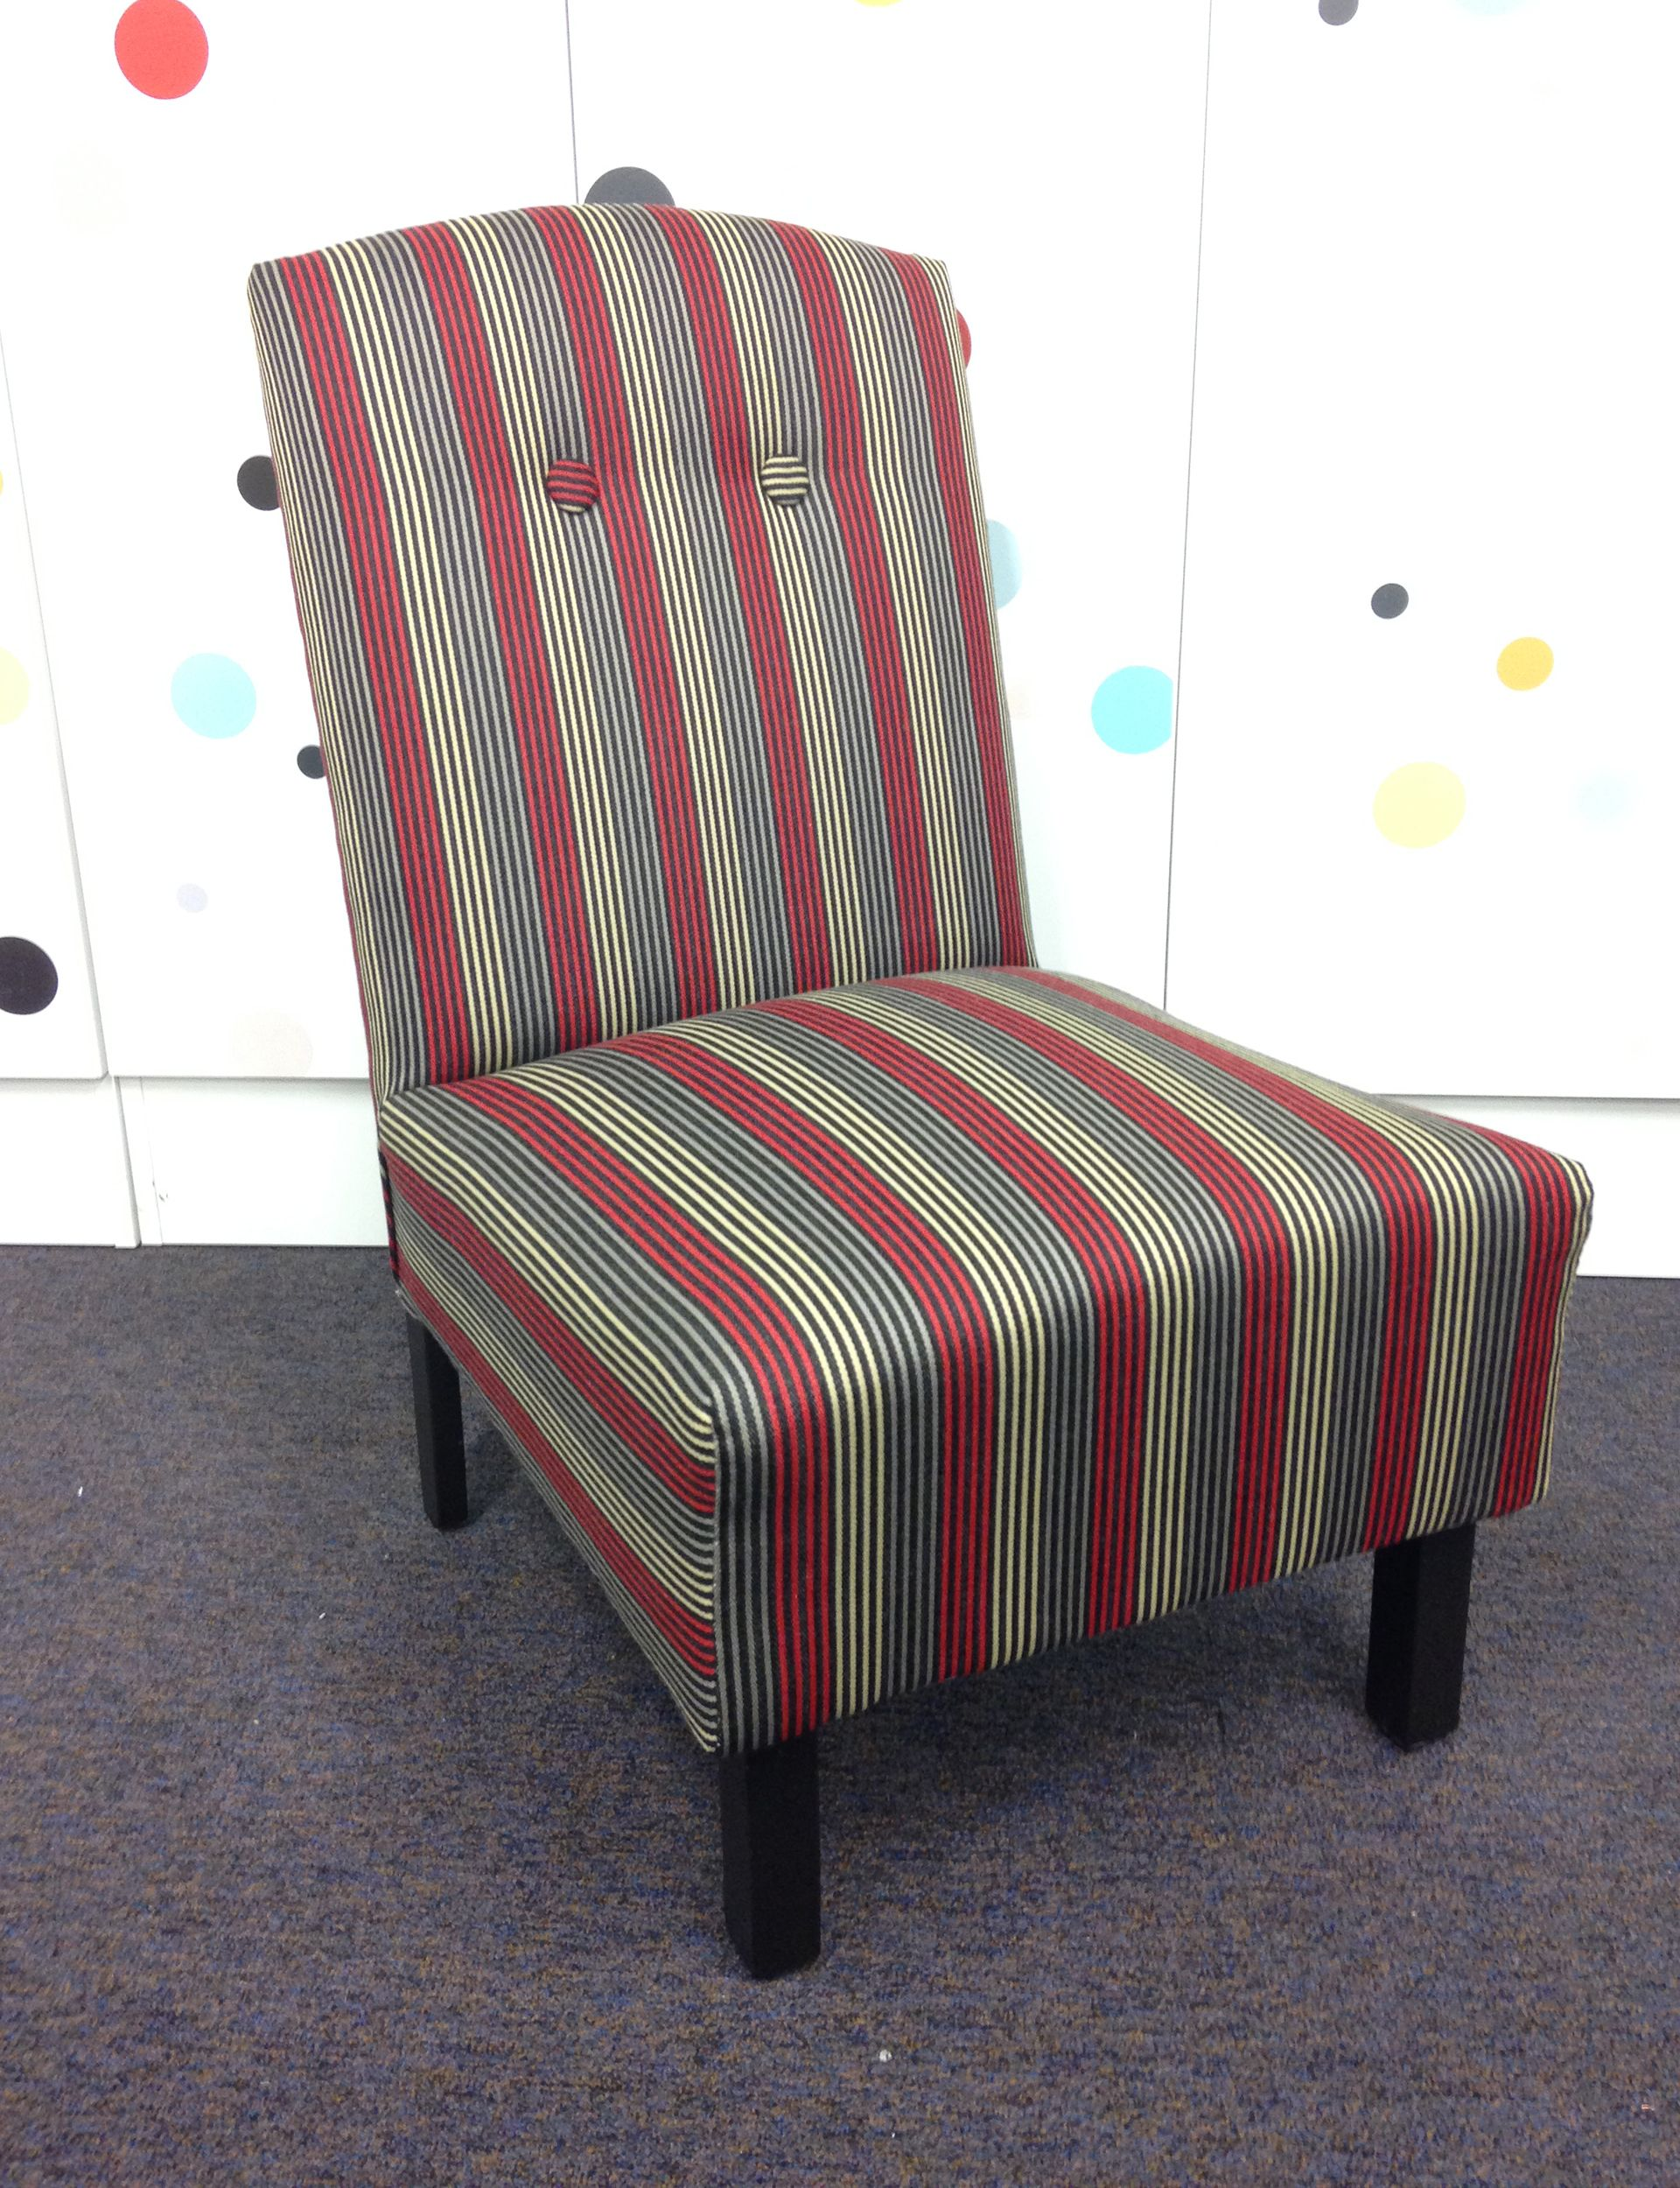 Reupholster Chair Your Step By Step Guide To Reupholstering An Armless Chair